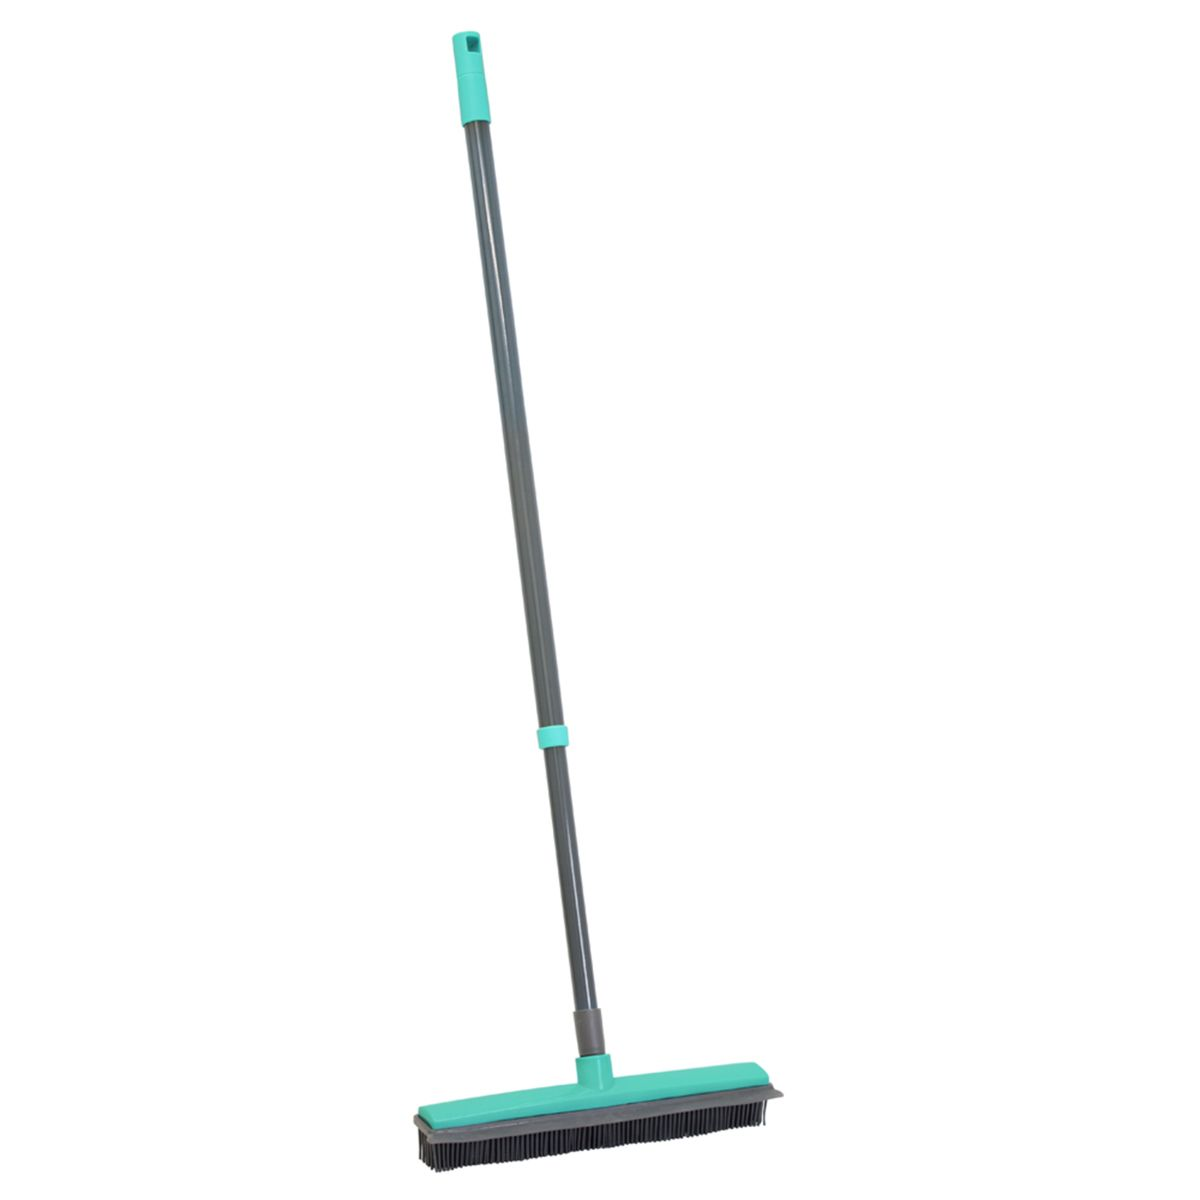 JVL Indoor Extendable Rubber Bristle Brush Broom with Squeegee Grey/Turquoise